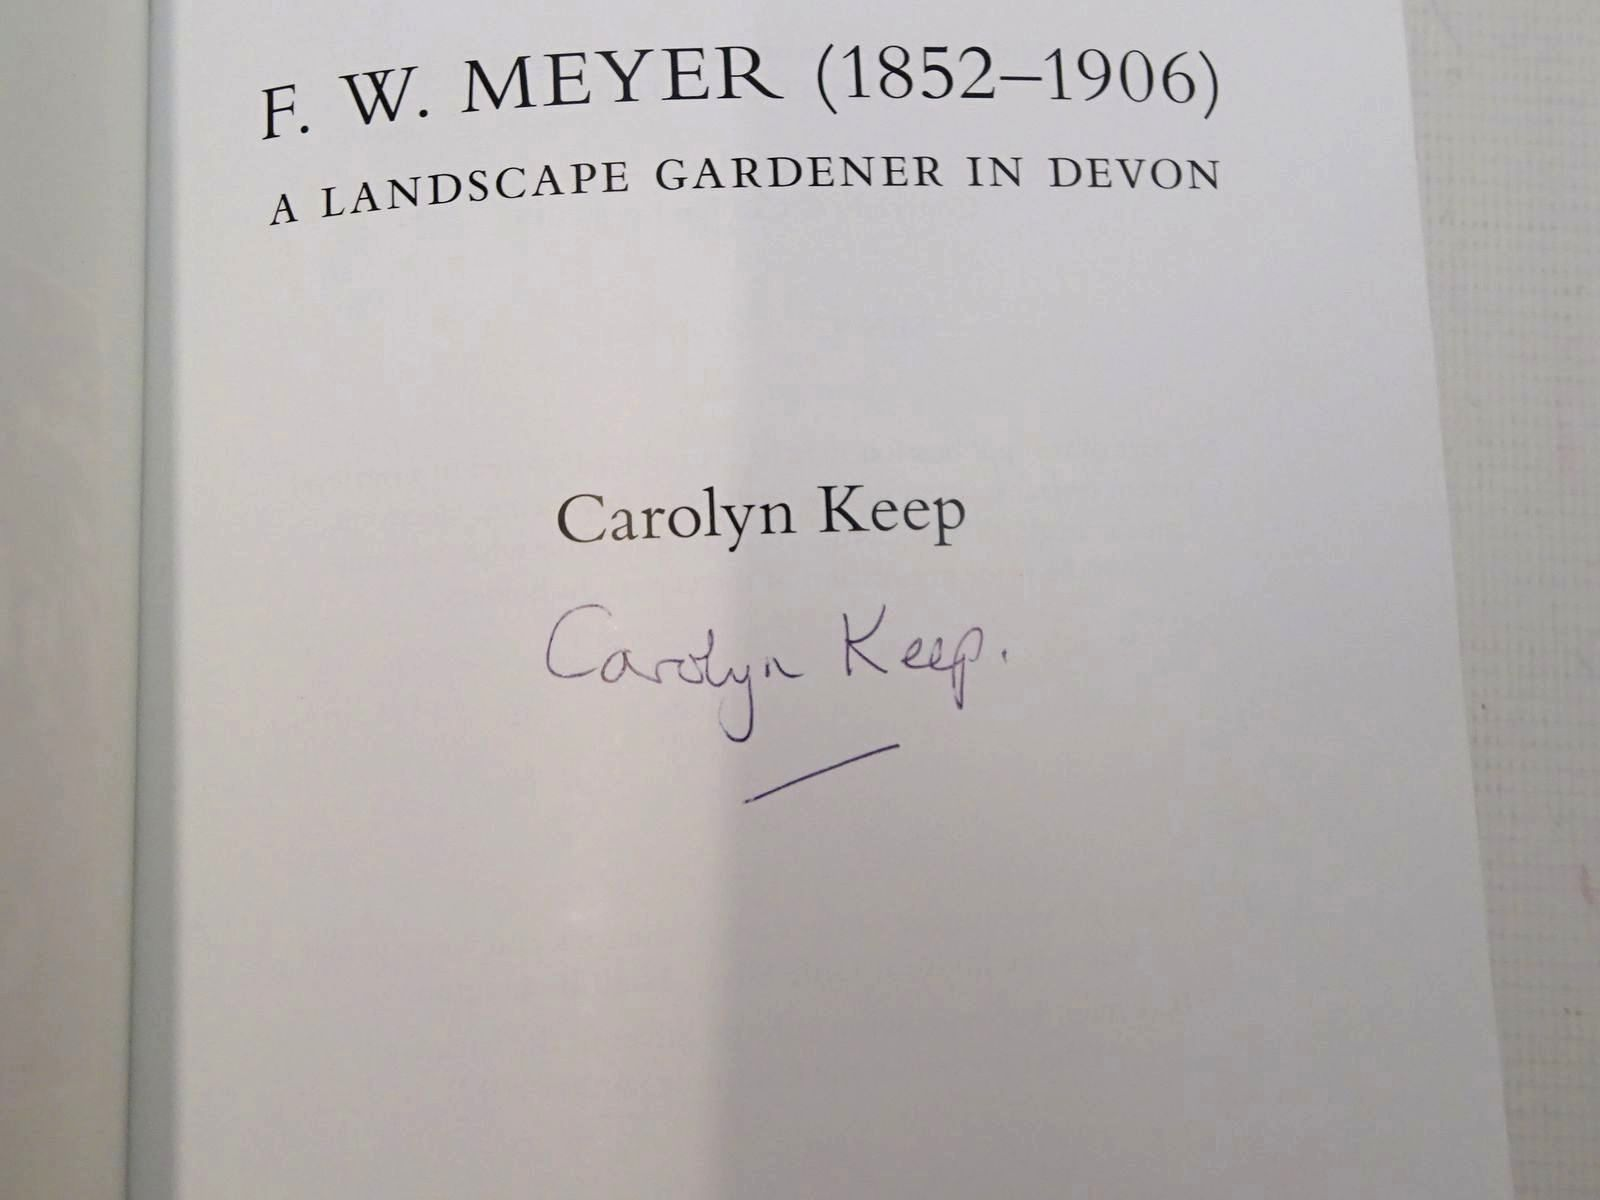 Photo of F.W. MEYER (1852-1906) A LANDSCAPE GARDENER IN DEVON written by Keep, Carolyn published by Devon Gardens Trust (STOCK CODE: 2127059)  for sale by Stella & Rose's Books